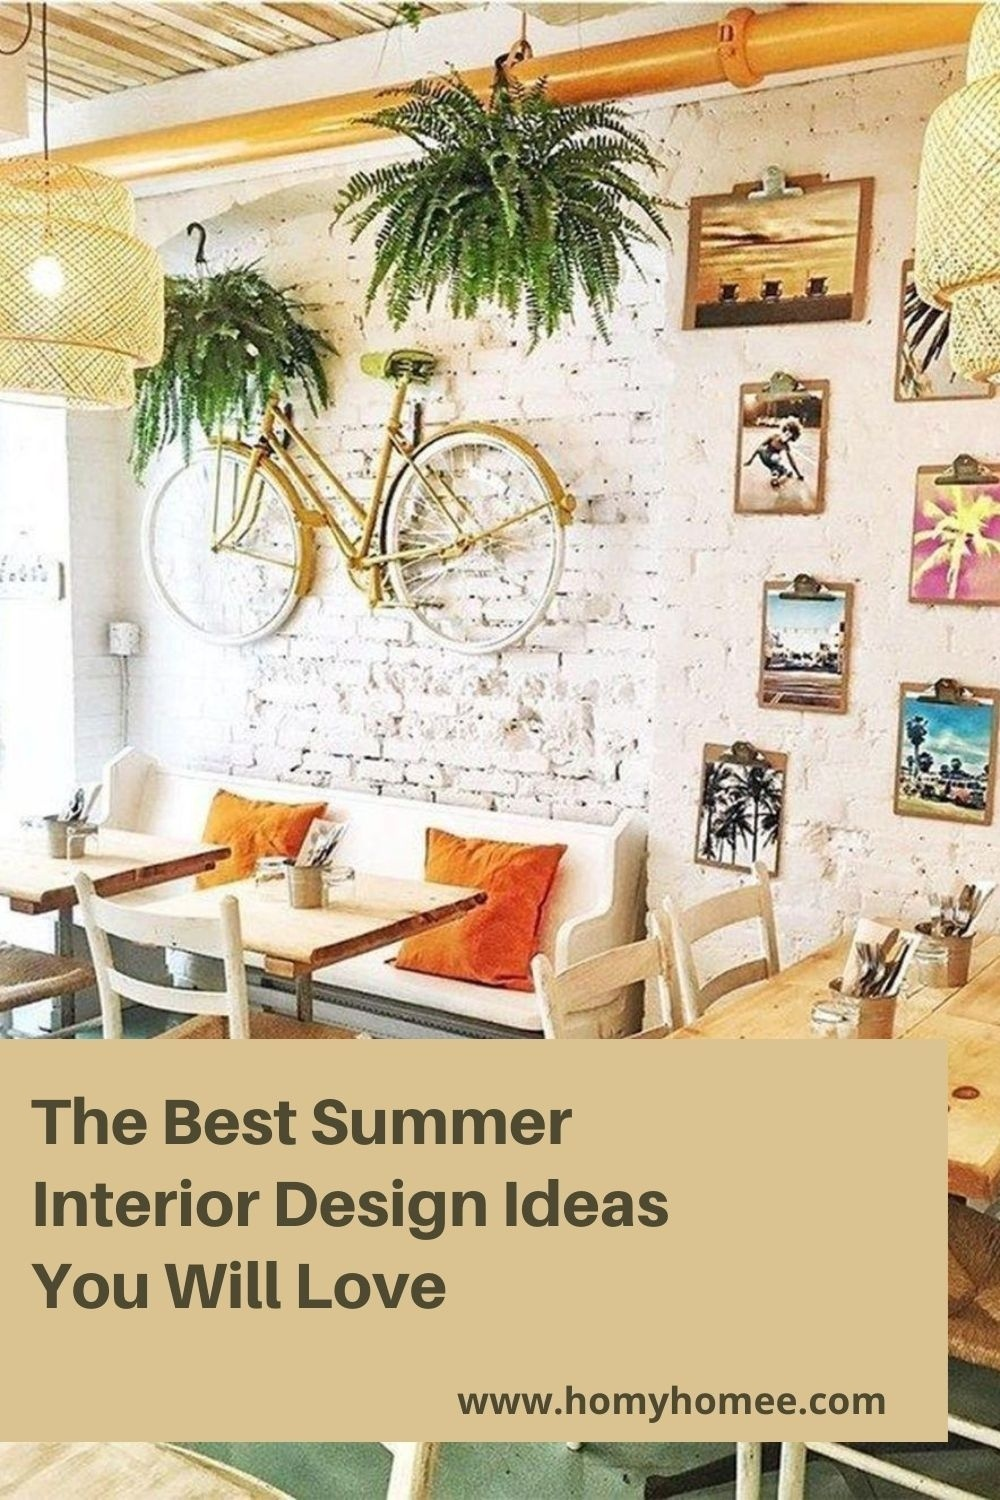 The Best Summer Interior Design Ideas You Will Love